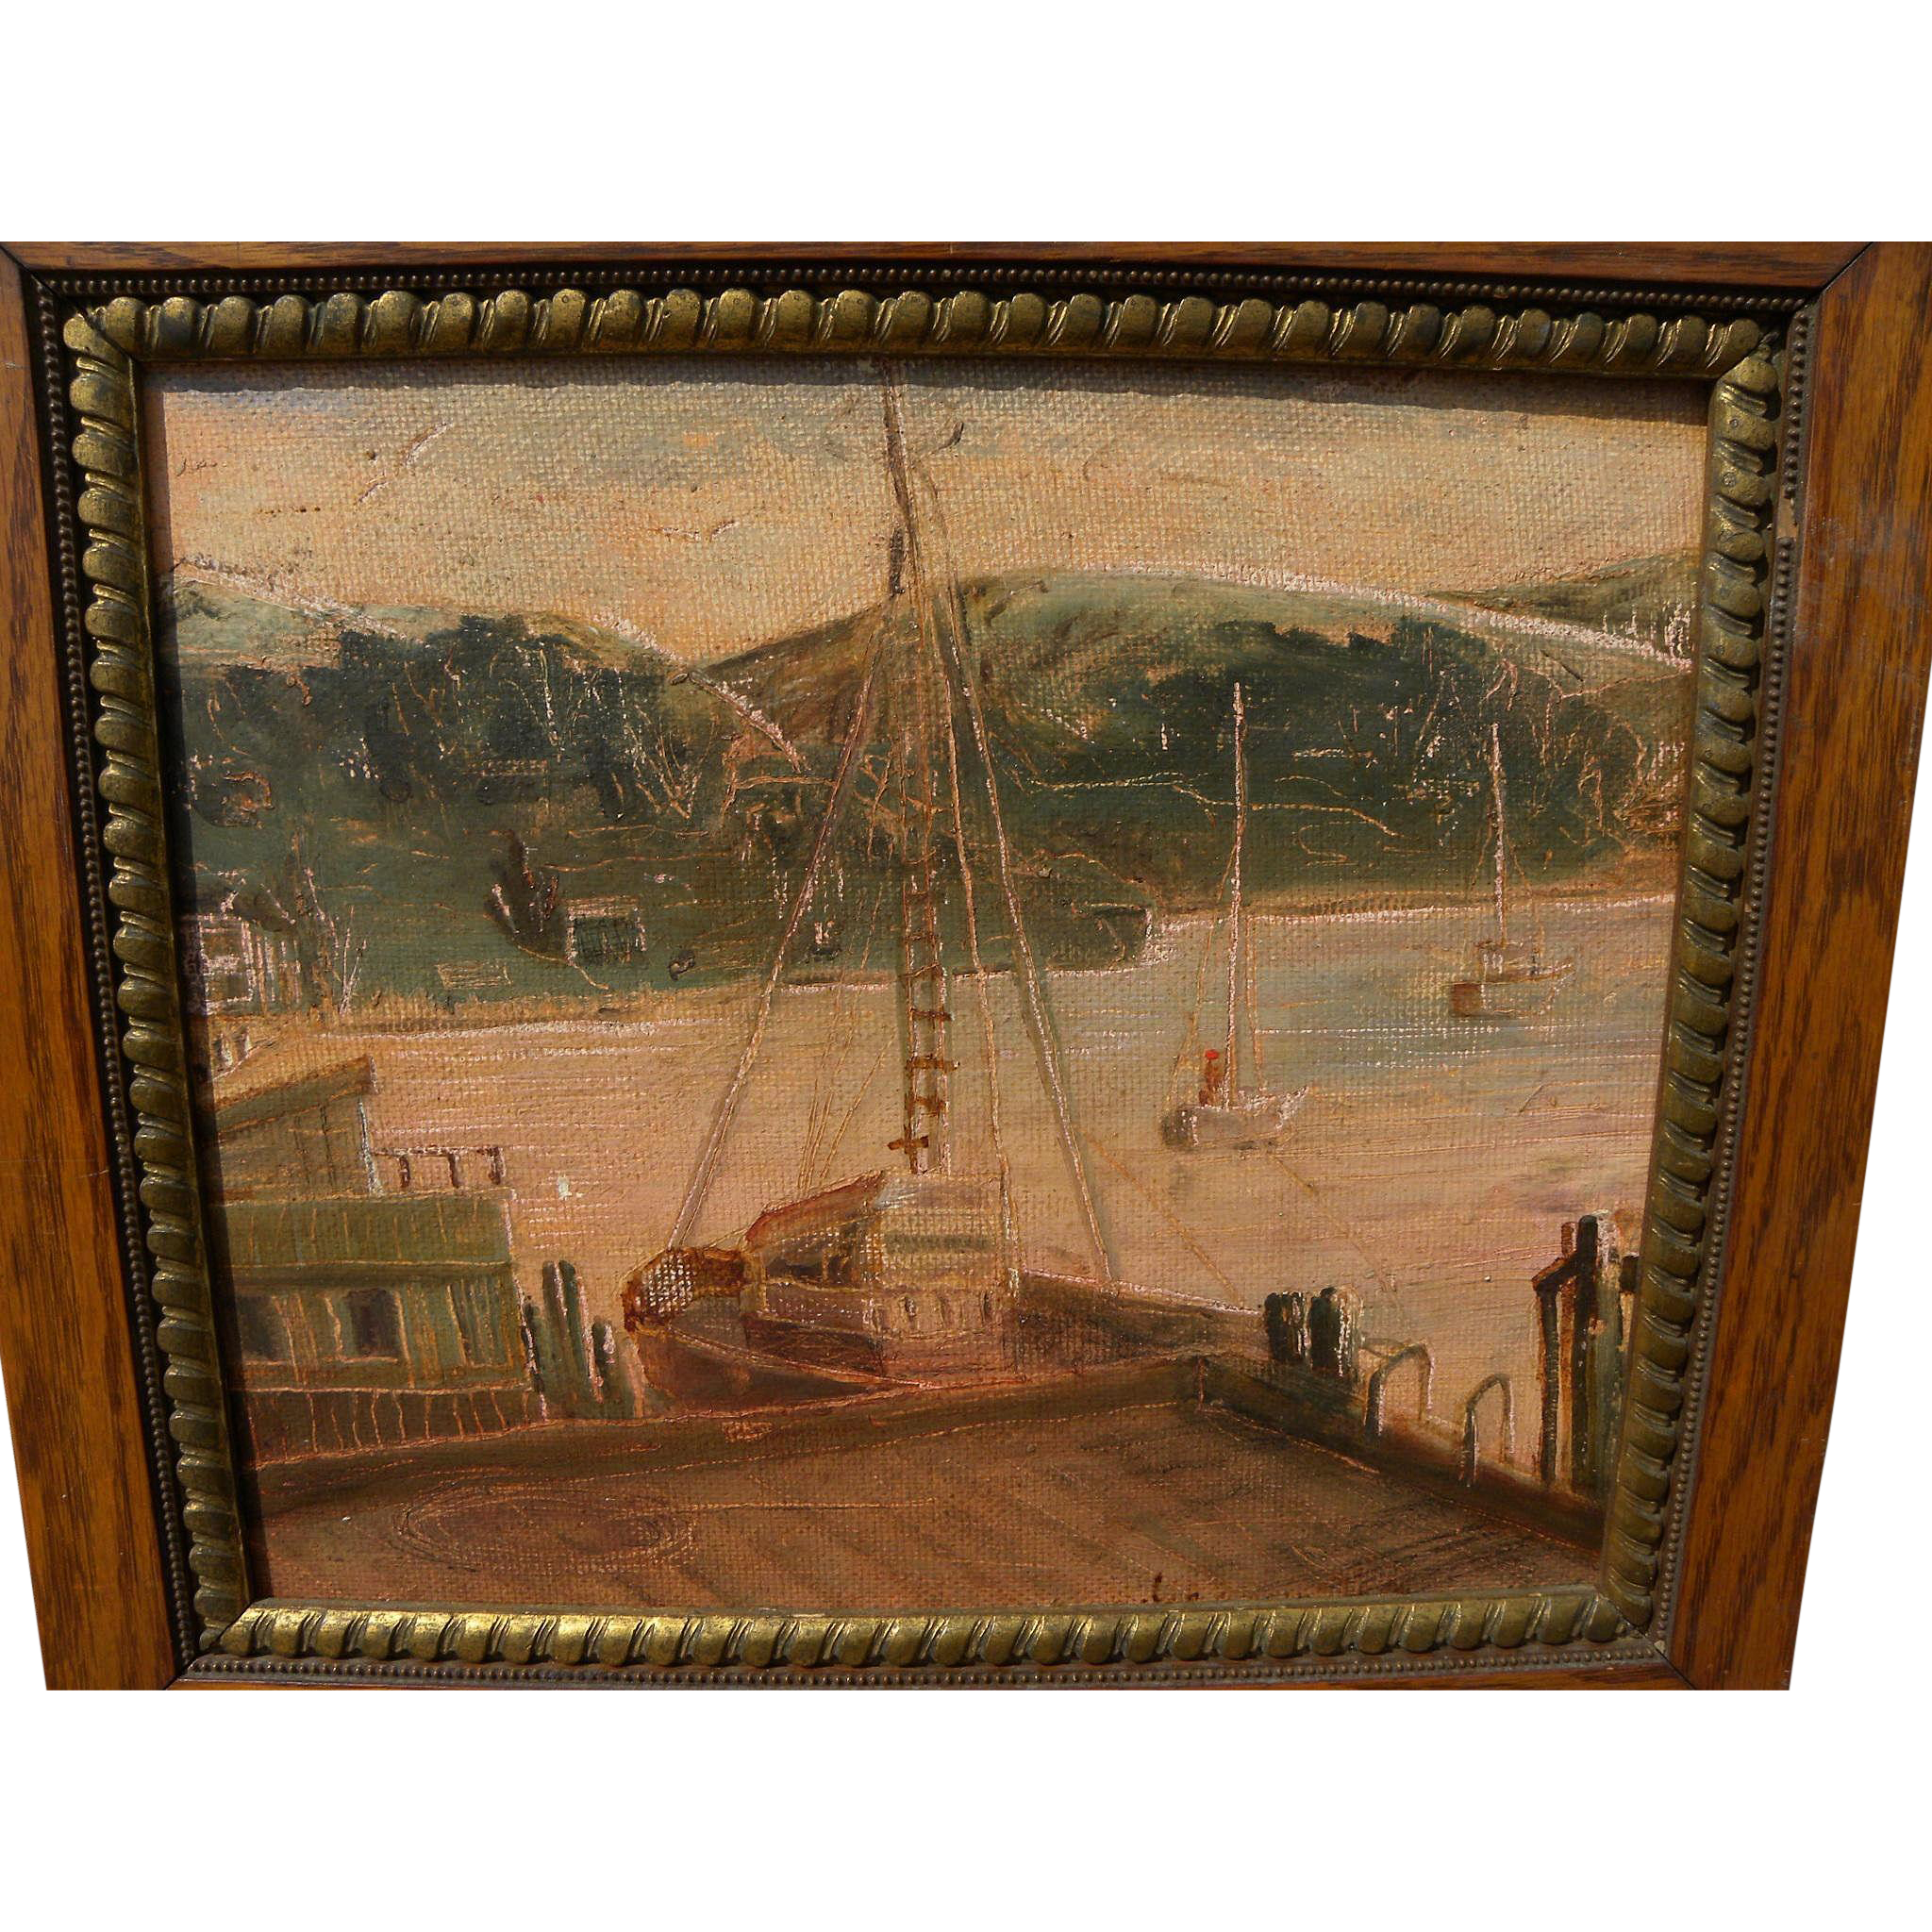 California art 1961 painting of Morro Bay harbor by artist Mary Harrington